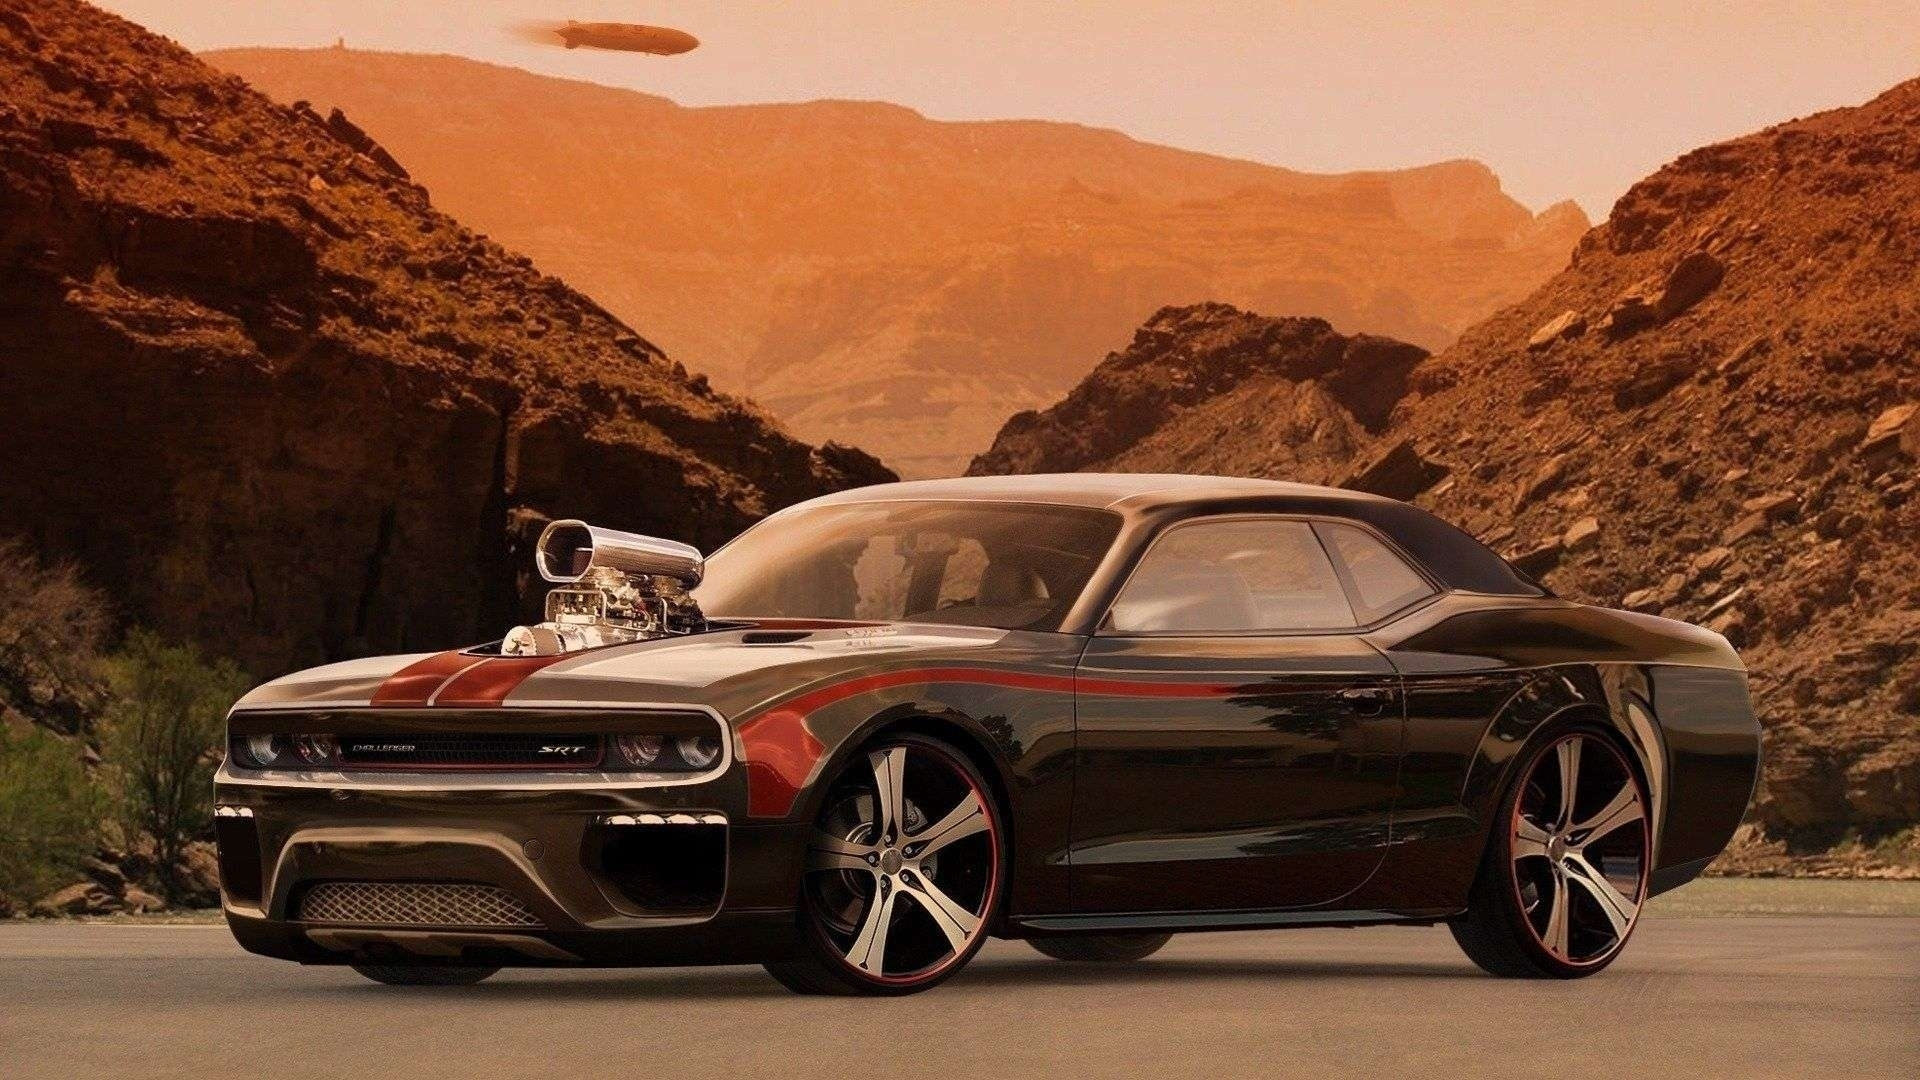 awesome muscle cars wallpaper for mobile | car's wallpapers